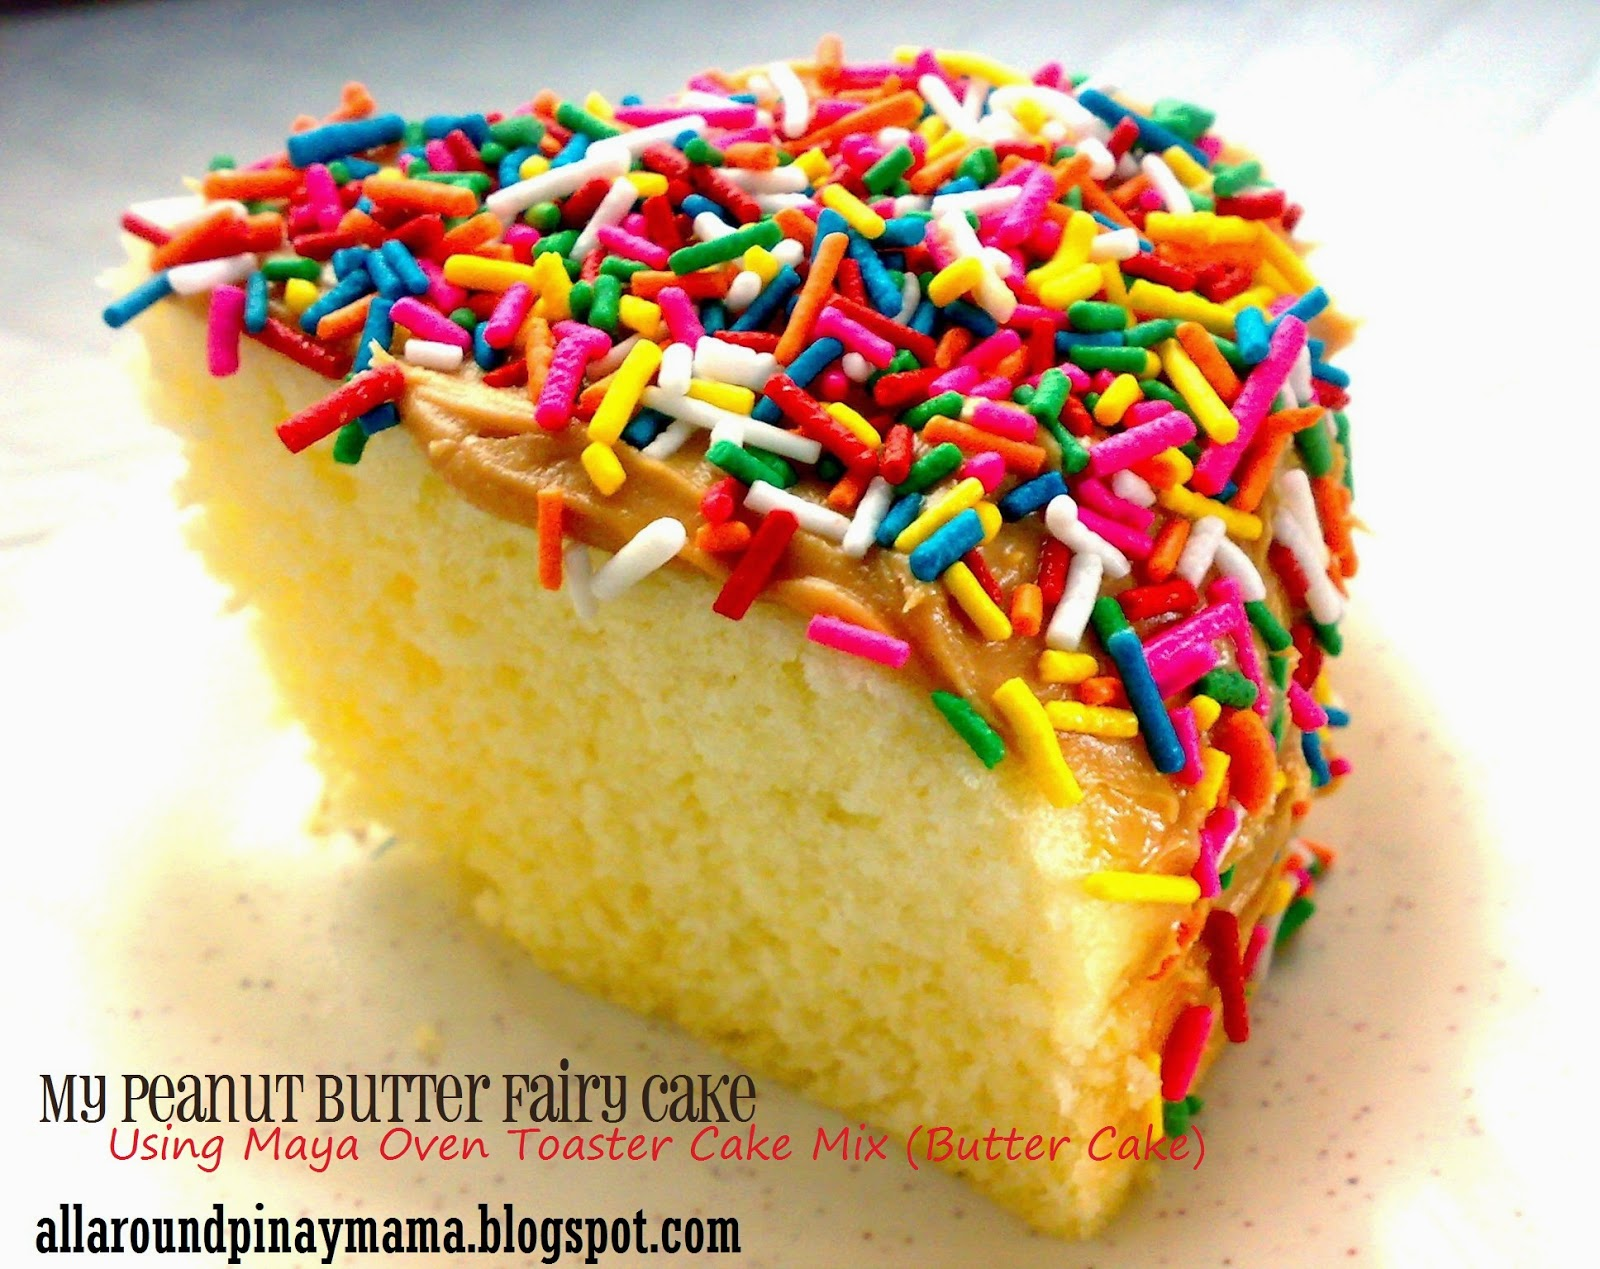 Can U Substitute Butter For Oil In Cake Mix